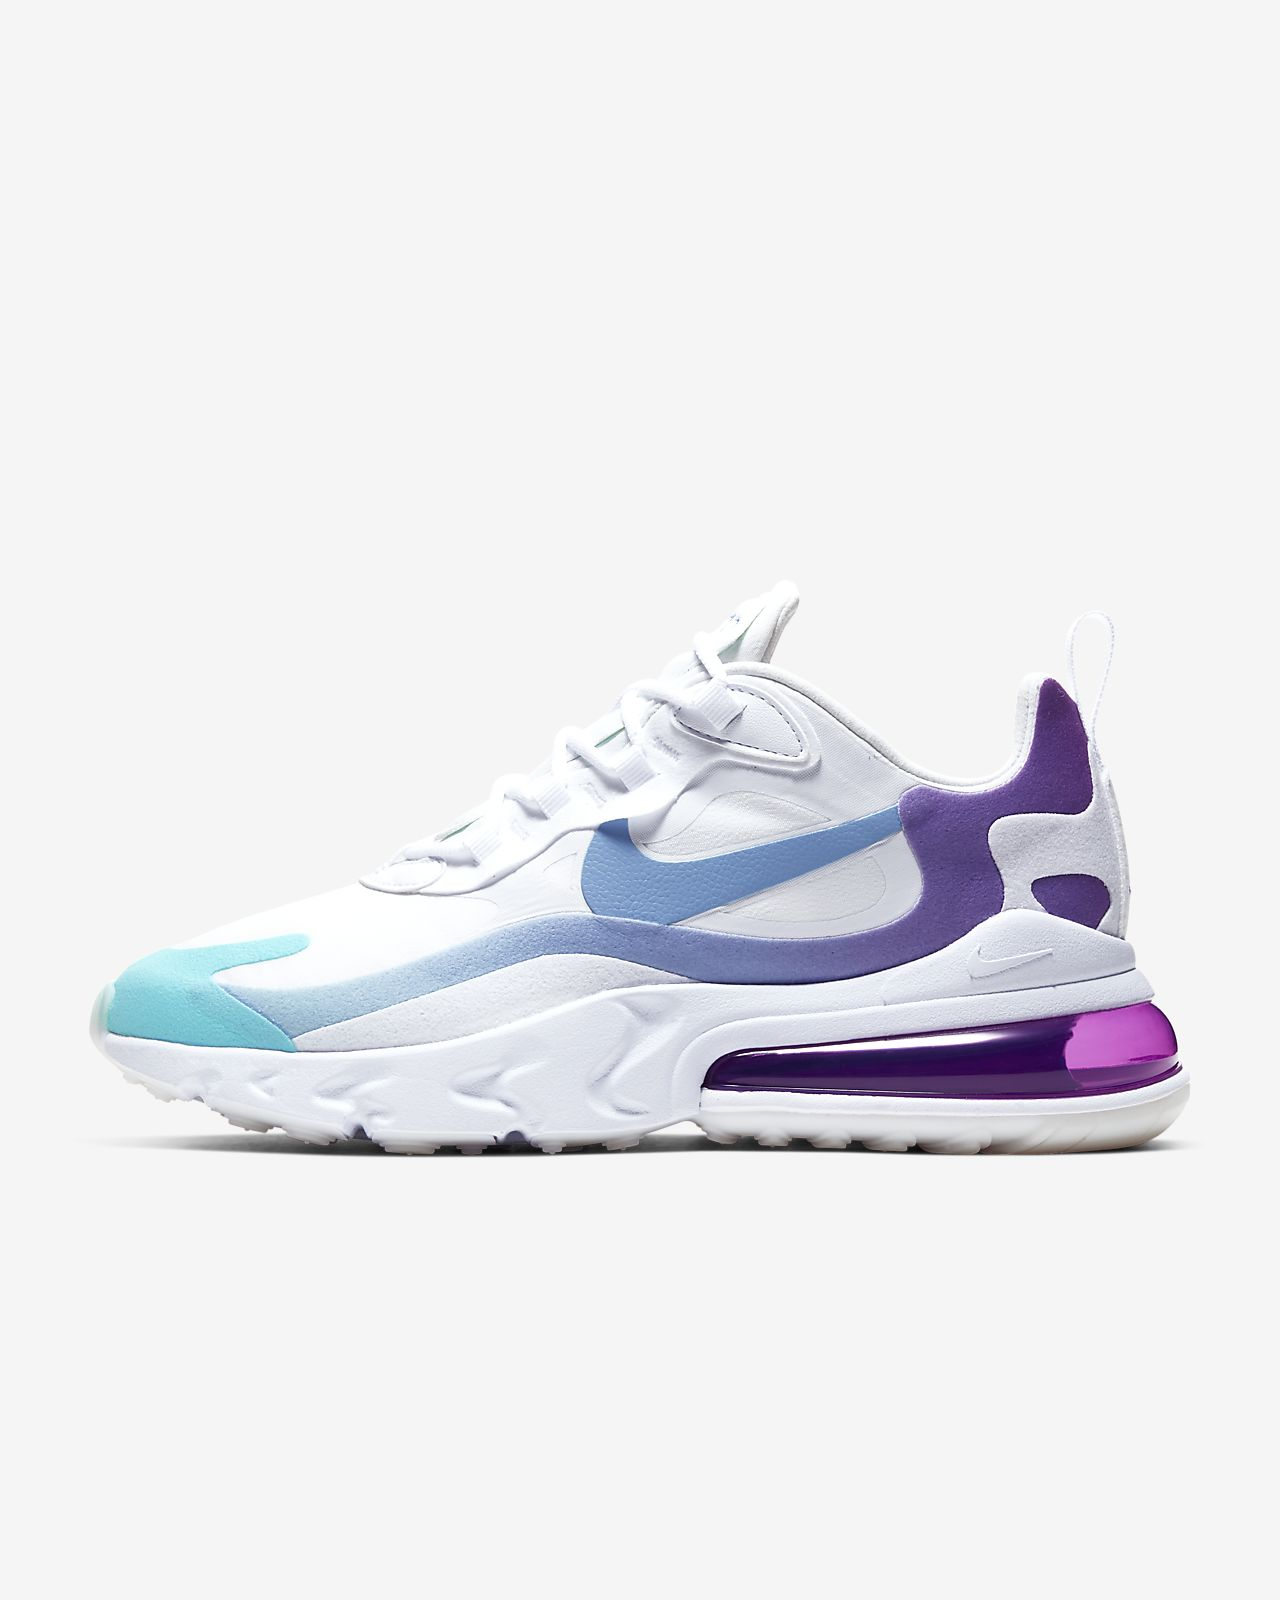 nike women's air max 270 react shoes white/blue/pink